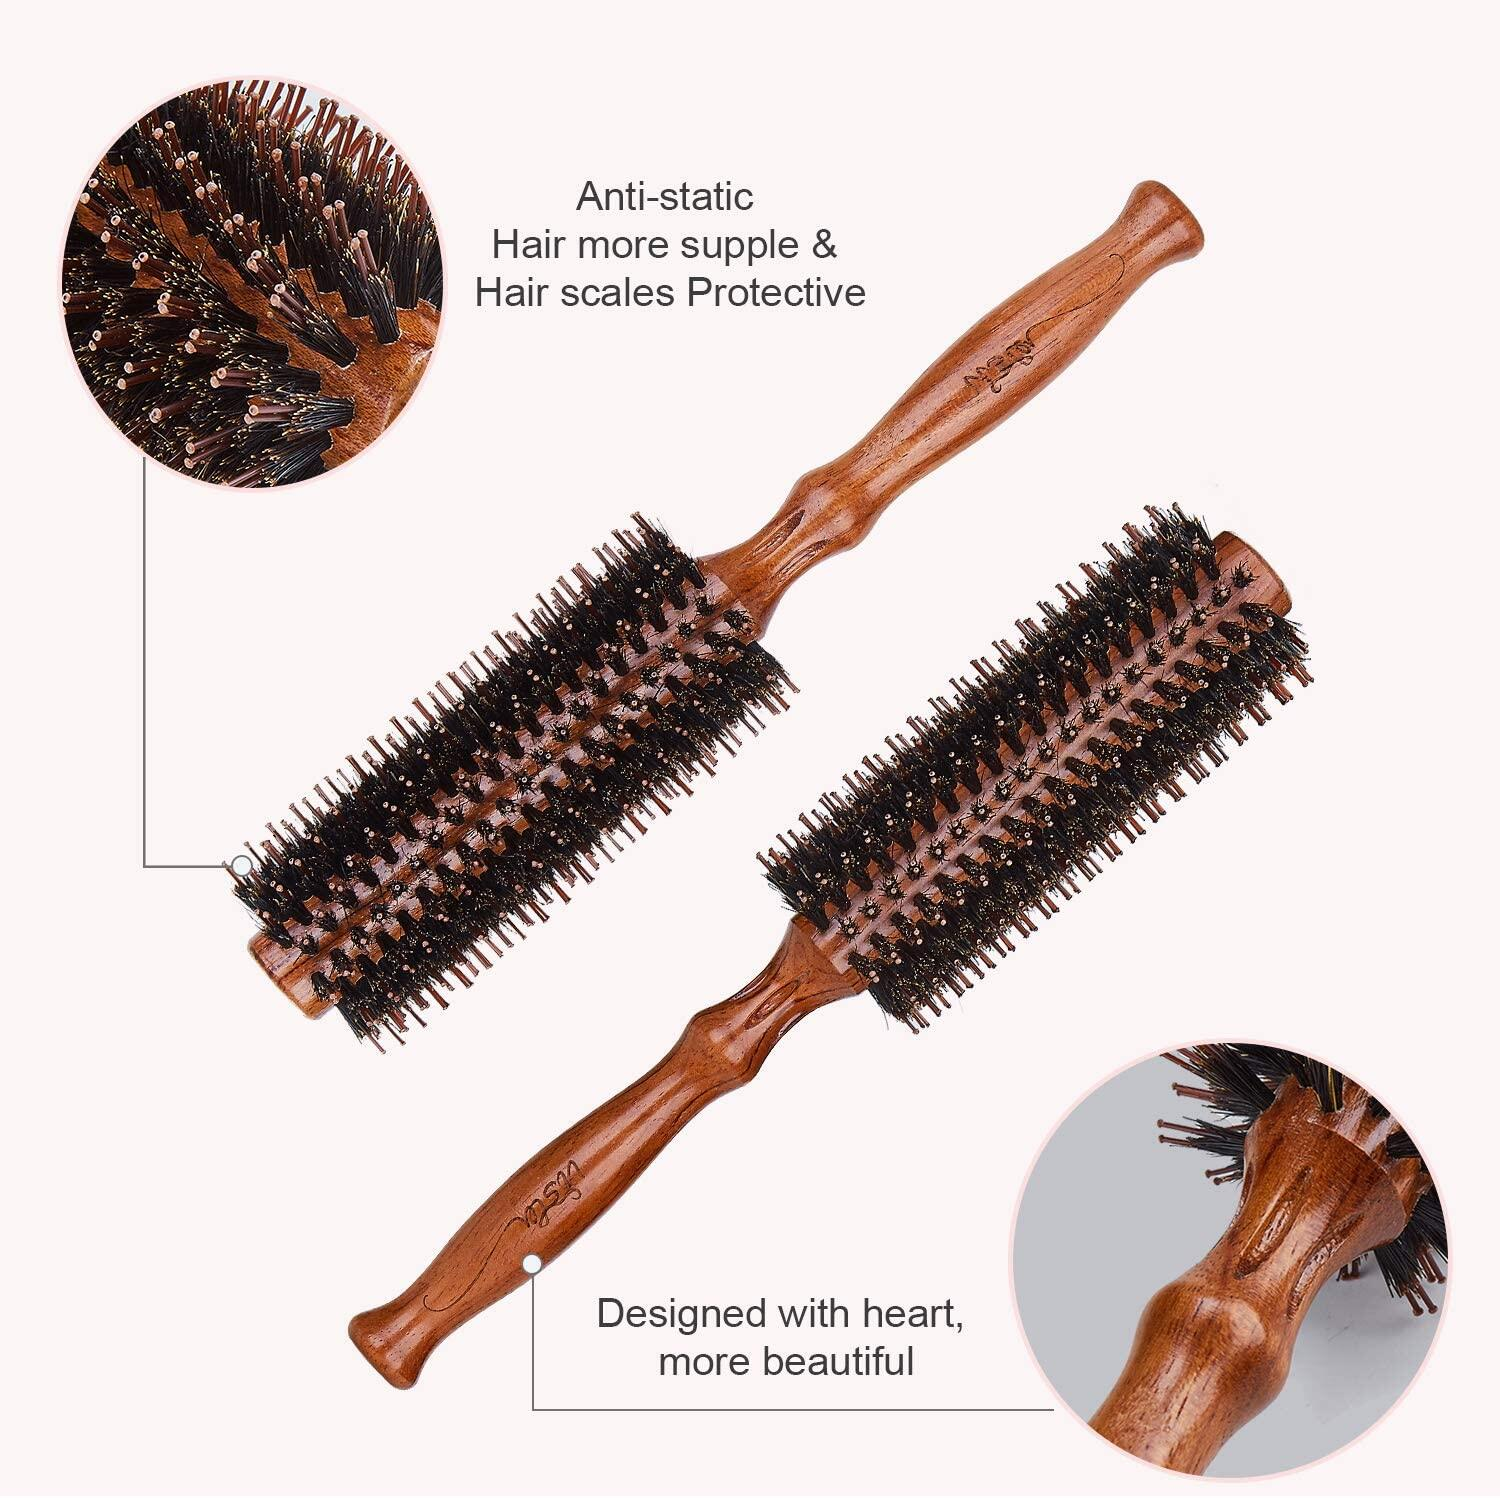 Vista Hair Brush Round 1 Piece, Boar Bristle Hairbrush For Men Anti Static Hair Care Perfect Size Detangle Hair Brush(twill) Vista Hair Brush Round 1 Piece Boar Bristle Hairbrush For Men Anti Static Hair Care Perfect Size Detangle Hair Brush(twill) hair brush